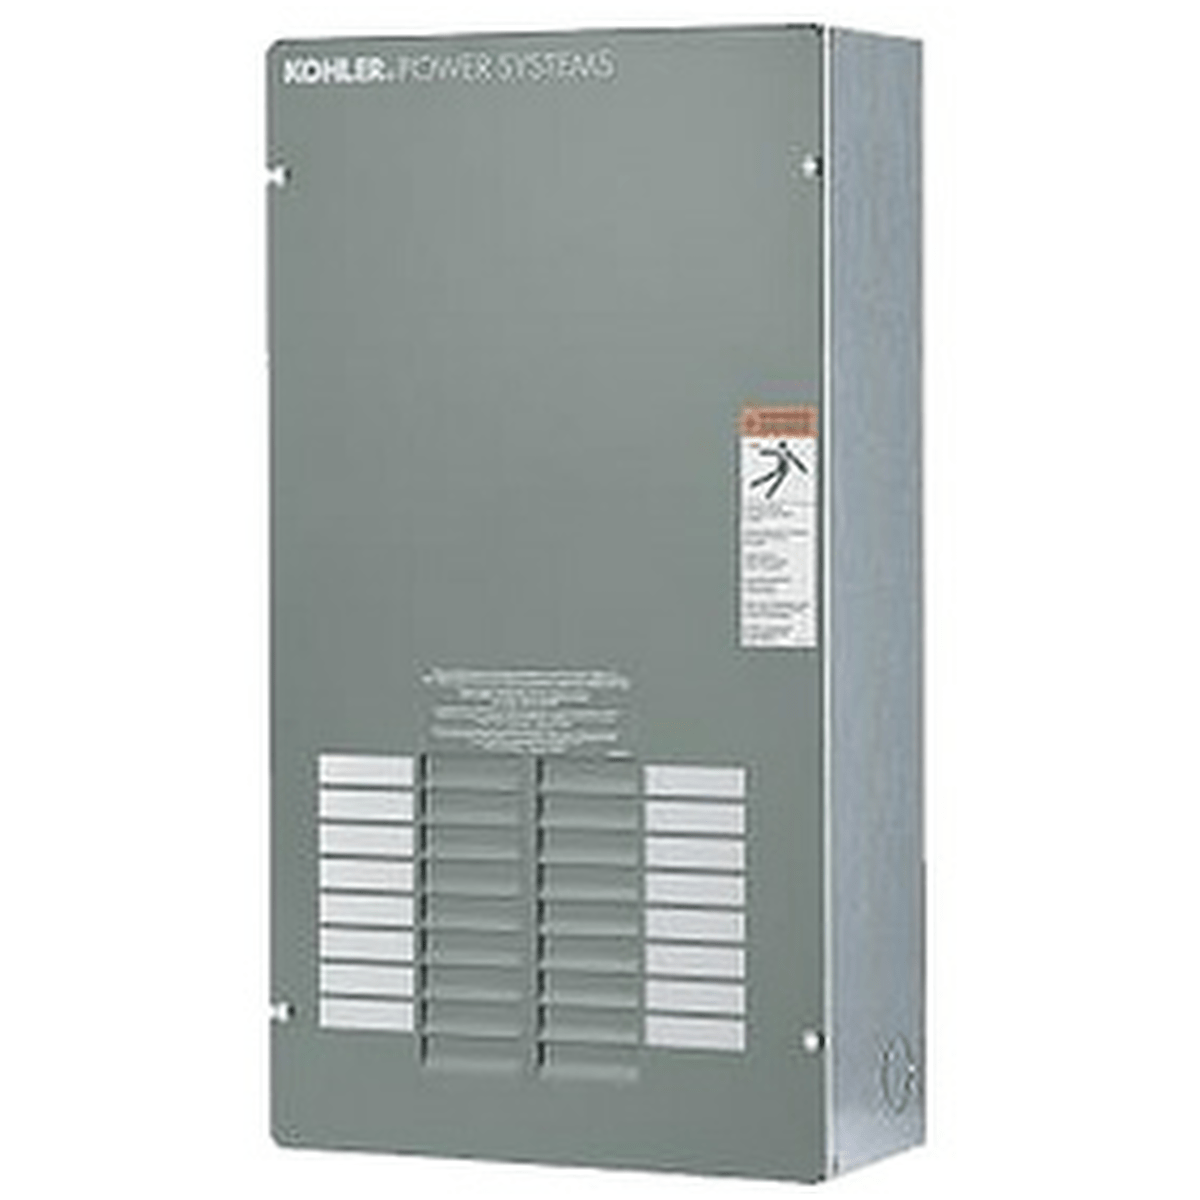 small resolution of kohler gm85273 100a 1 120 240v nema 1 automatic transfer switch with 12